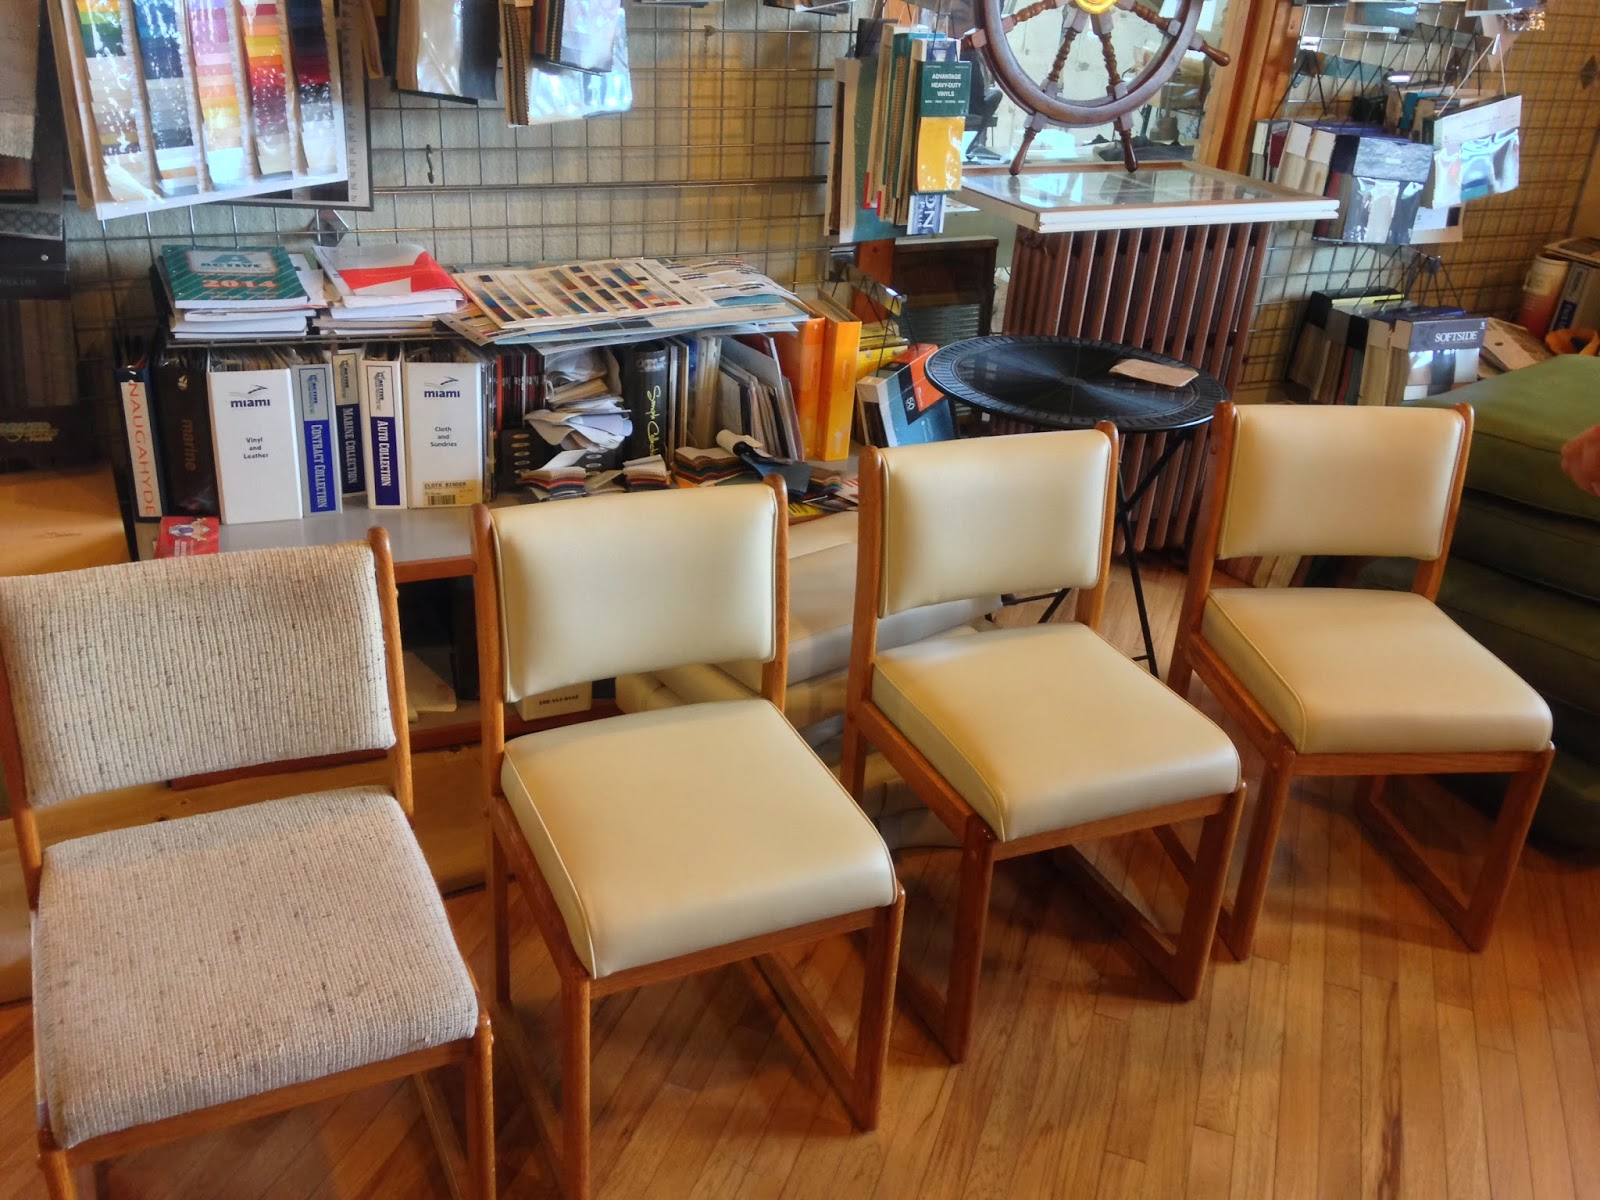 Recovering Chair Cushions Vinyl Pride Lift Chairs Homestyle Custom Upholstery And Awning Before After